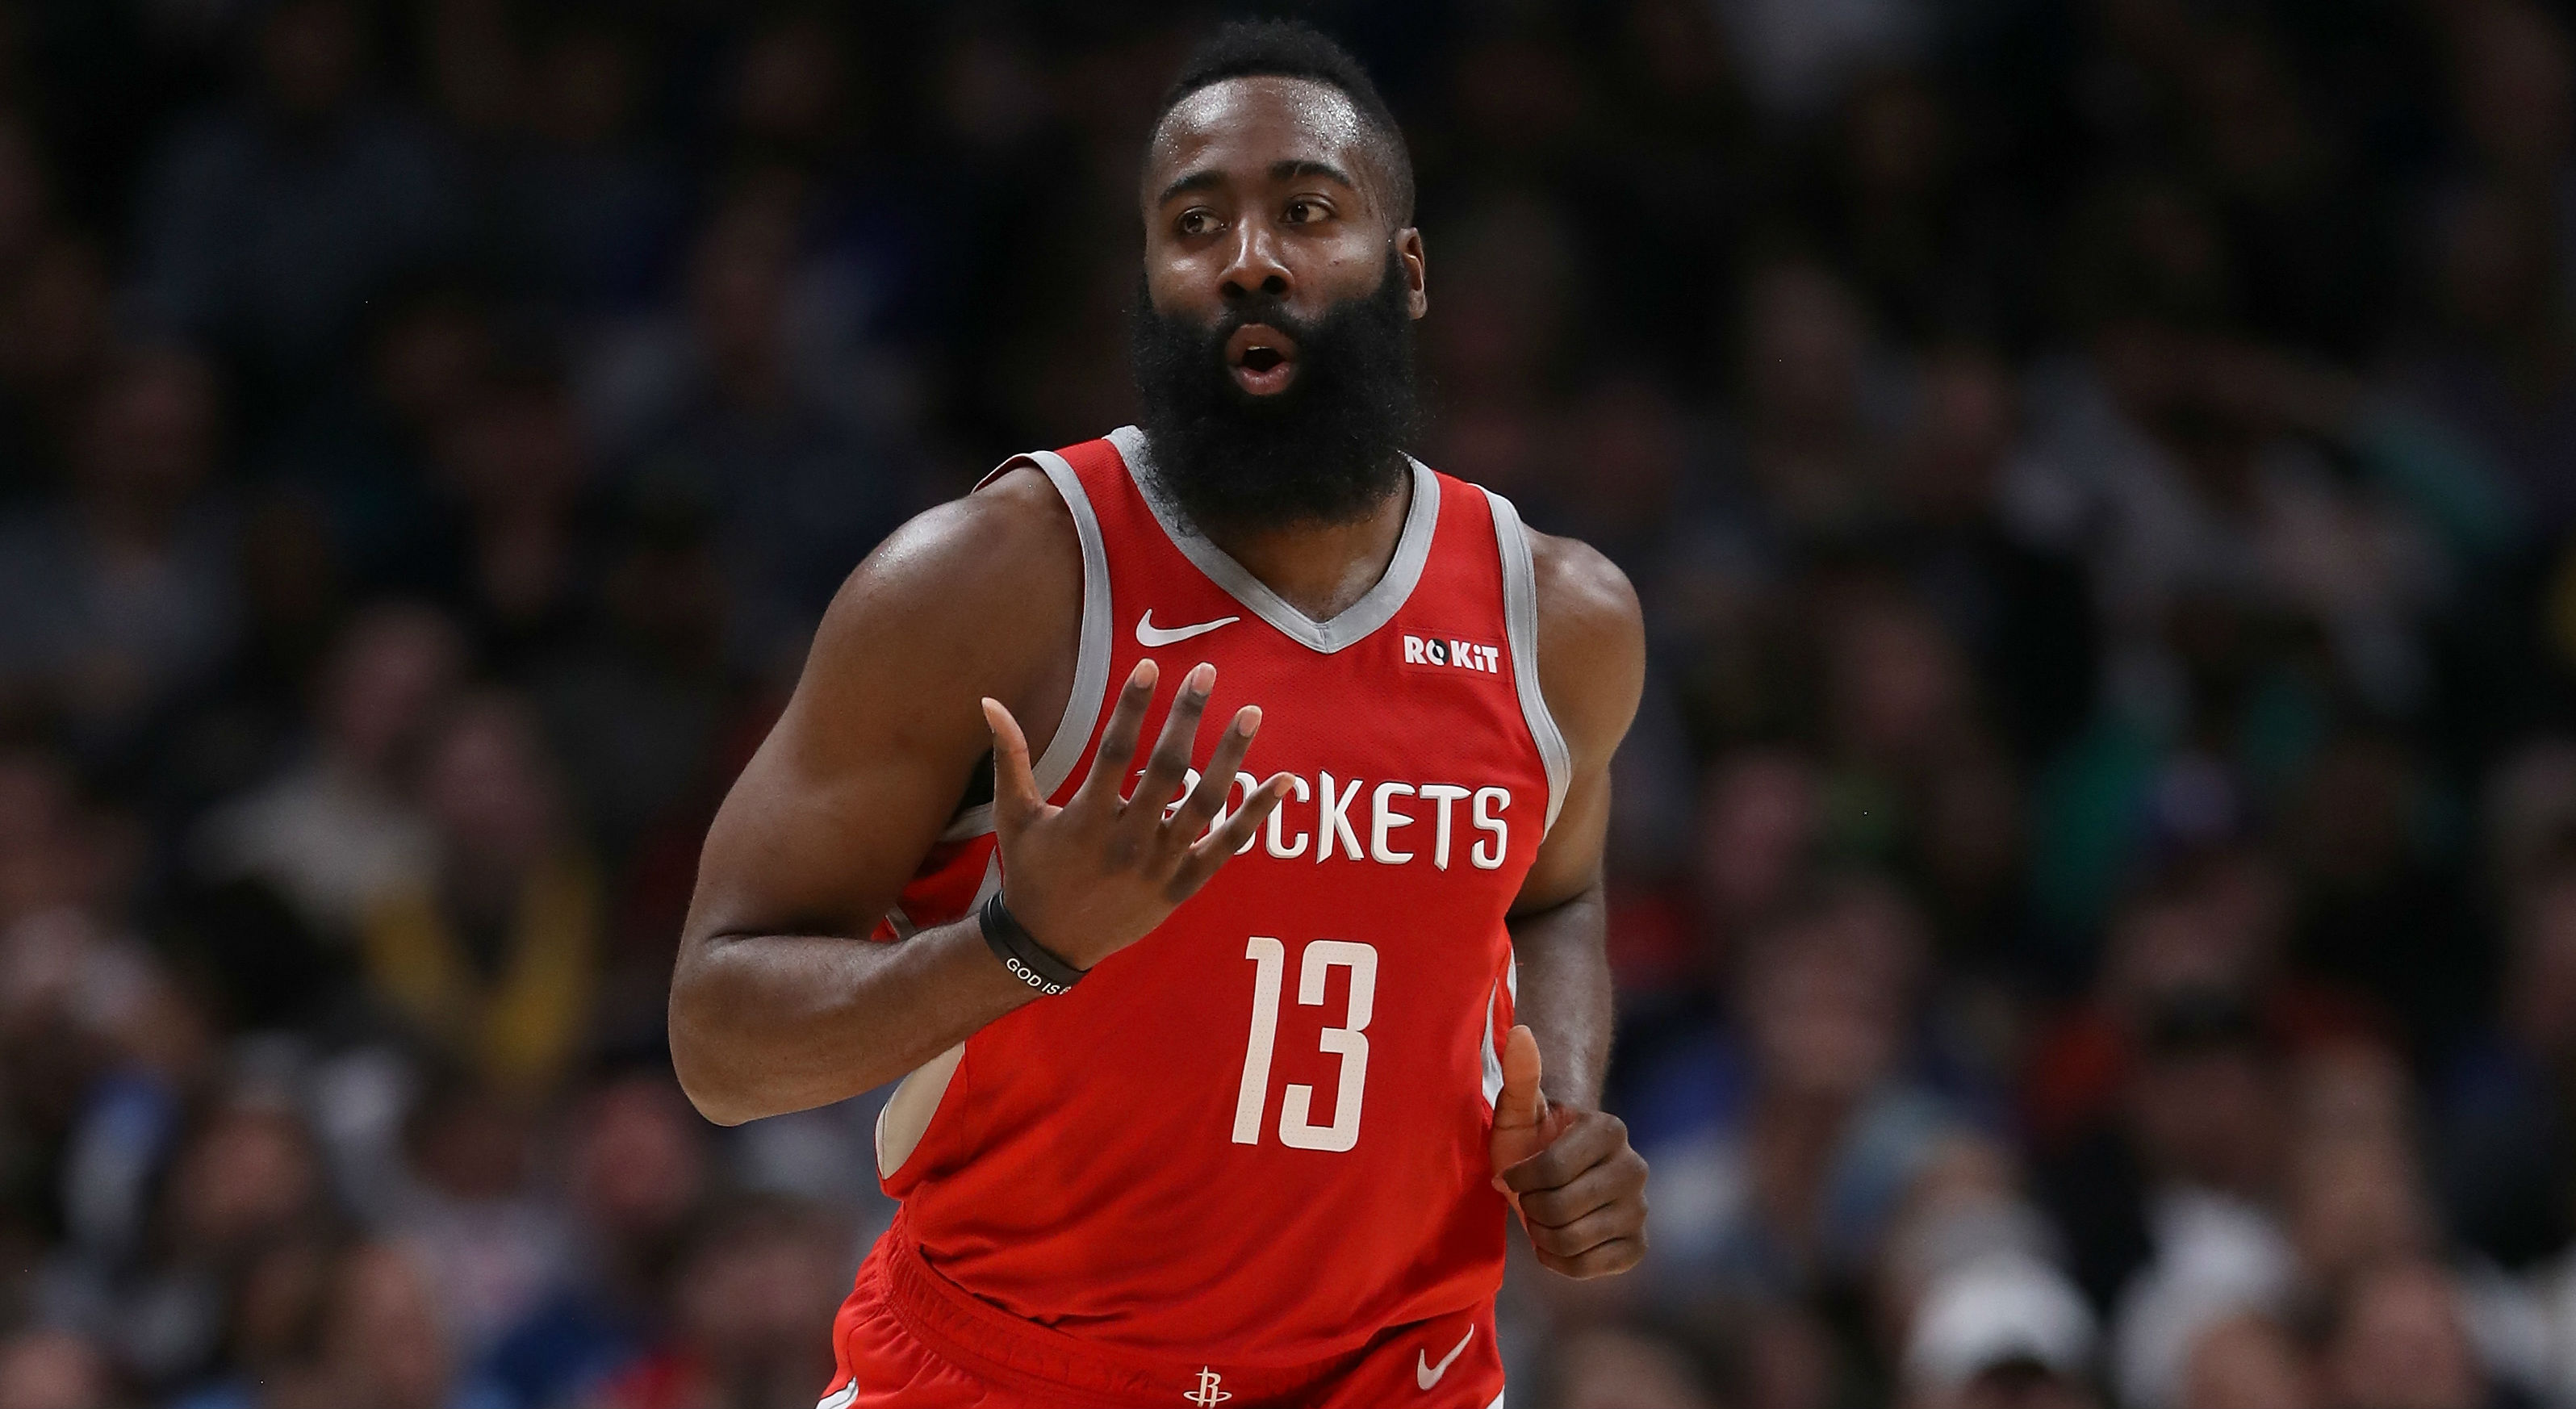 Harden drains game-winning 3-pointer in OT thriller against Warriors